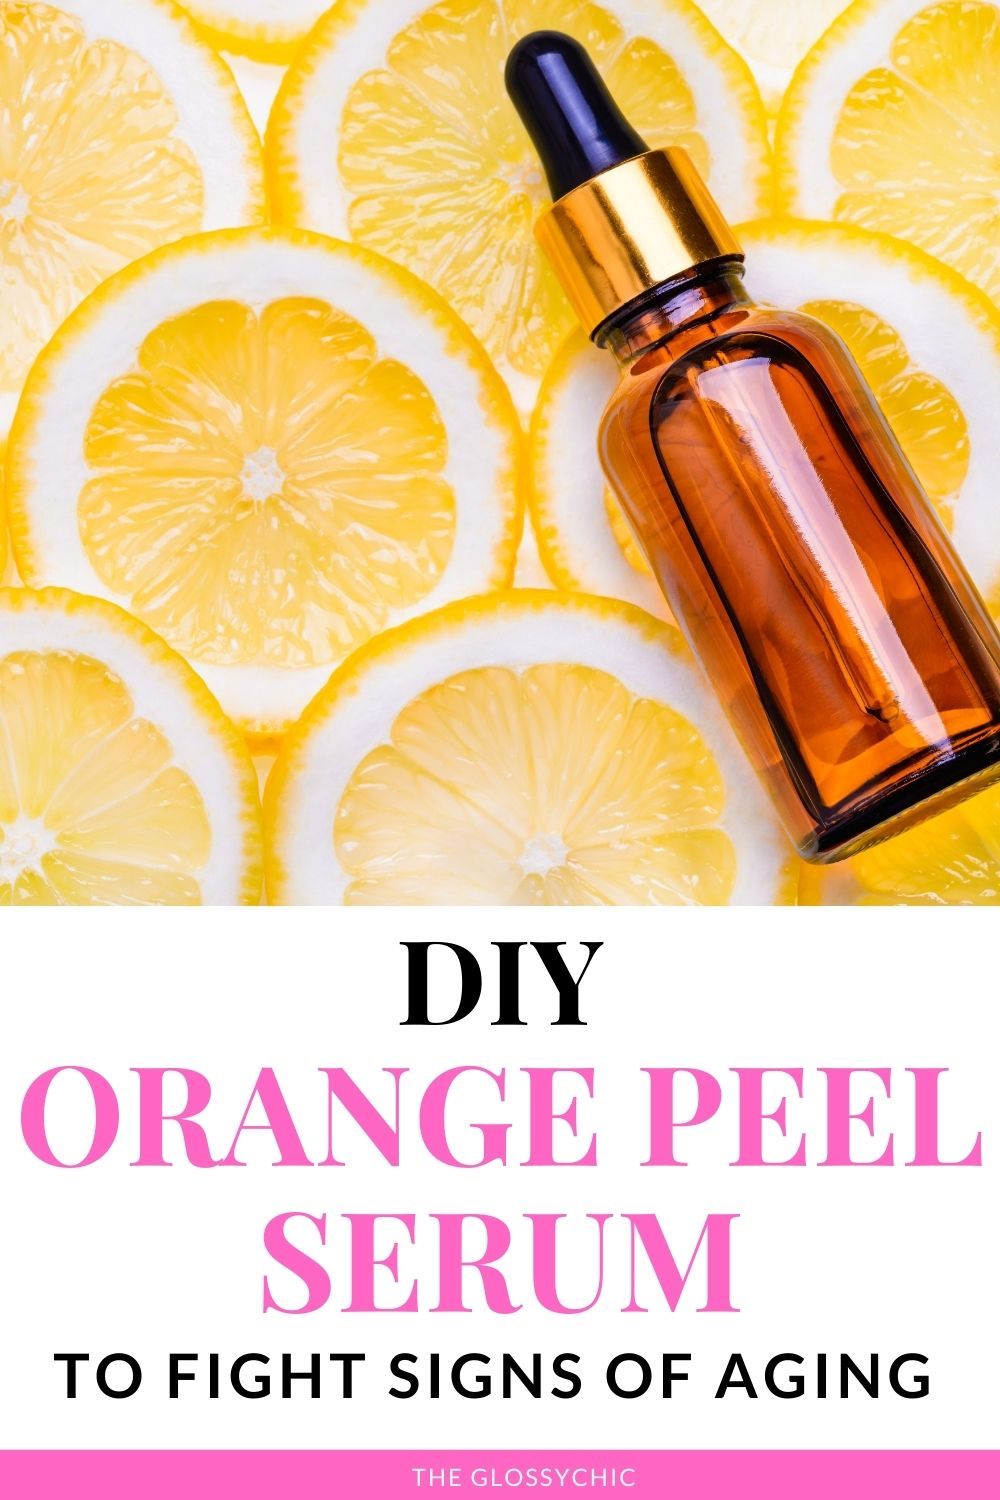 diy orange peel serum for face to fight signs of aging